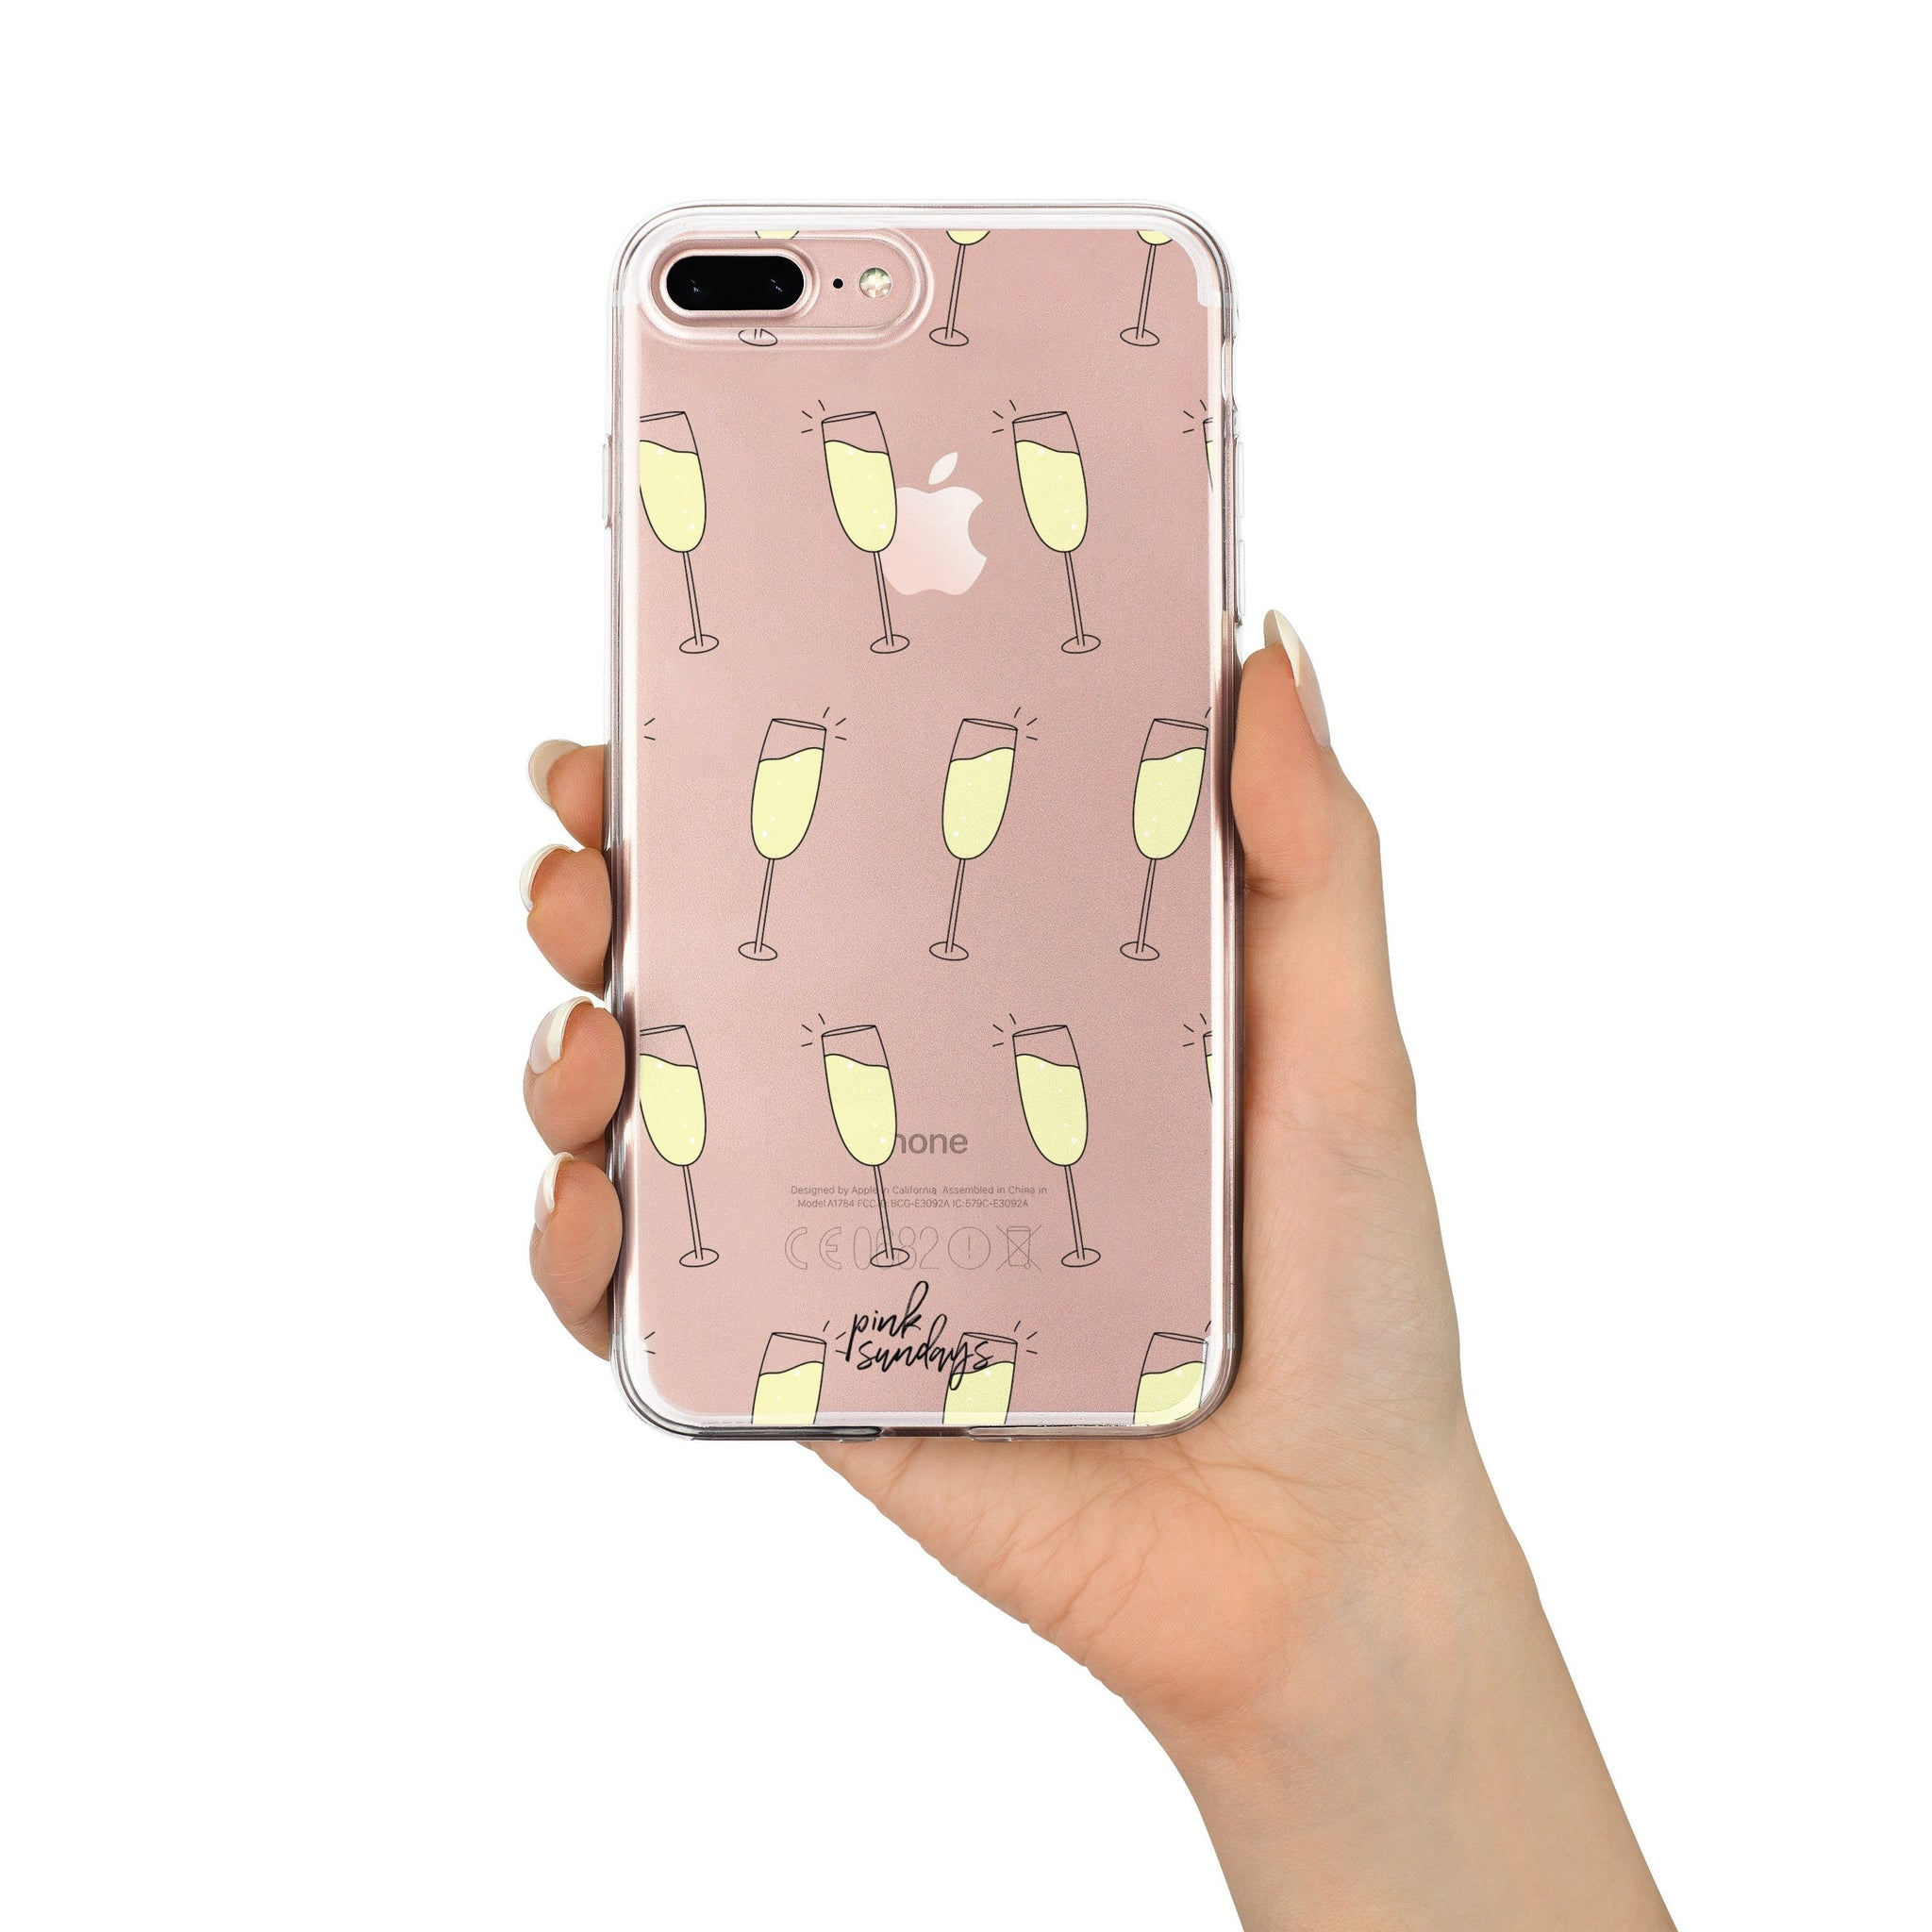 Champagne glasses pattern, clear iphone case, champagne, pattern phone case, champagne iphone case, cute phone cases, see through, gift